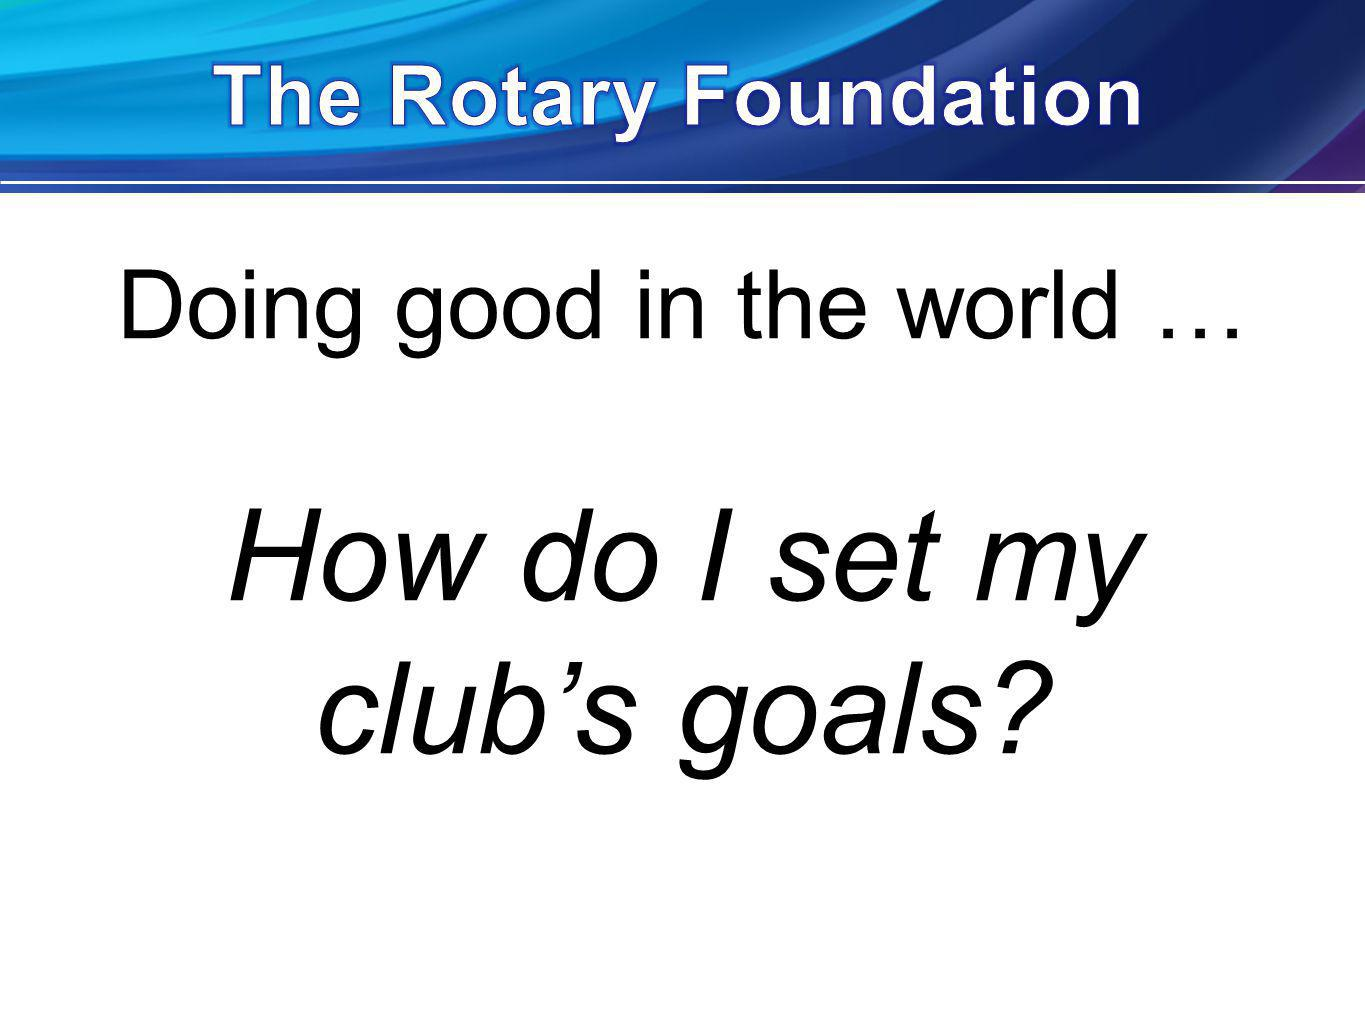 Doing good in the world … How do I set my clubs goals